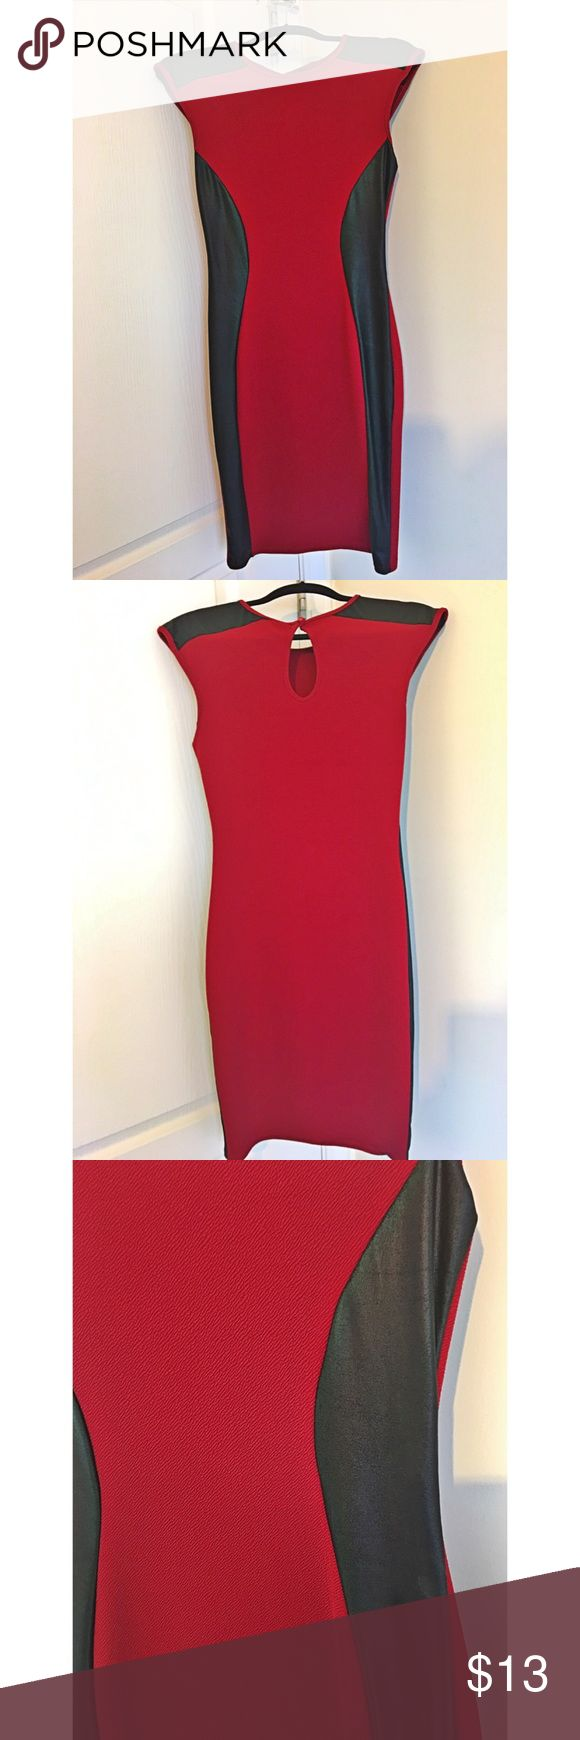 Red midi dress with leatherette detail Red midi dress with leatherette detail. No stains, no holes, no damage. This dress hugs your curves and looks great on especially paired with a stylish blazer. interi Dresses Midi